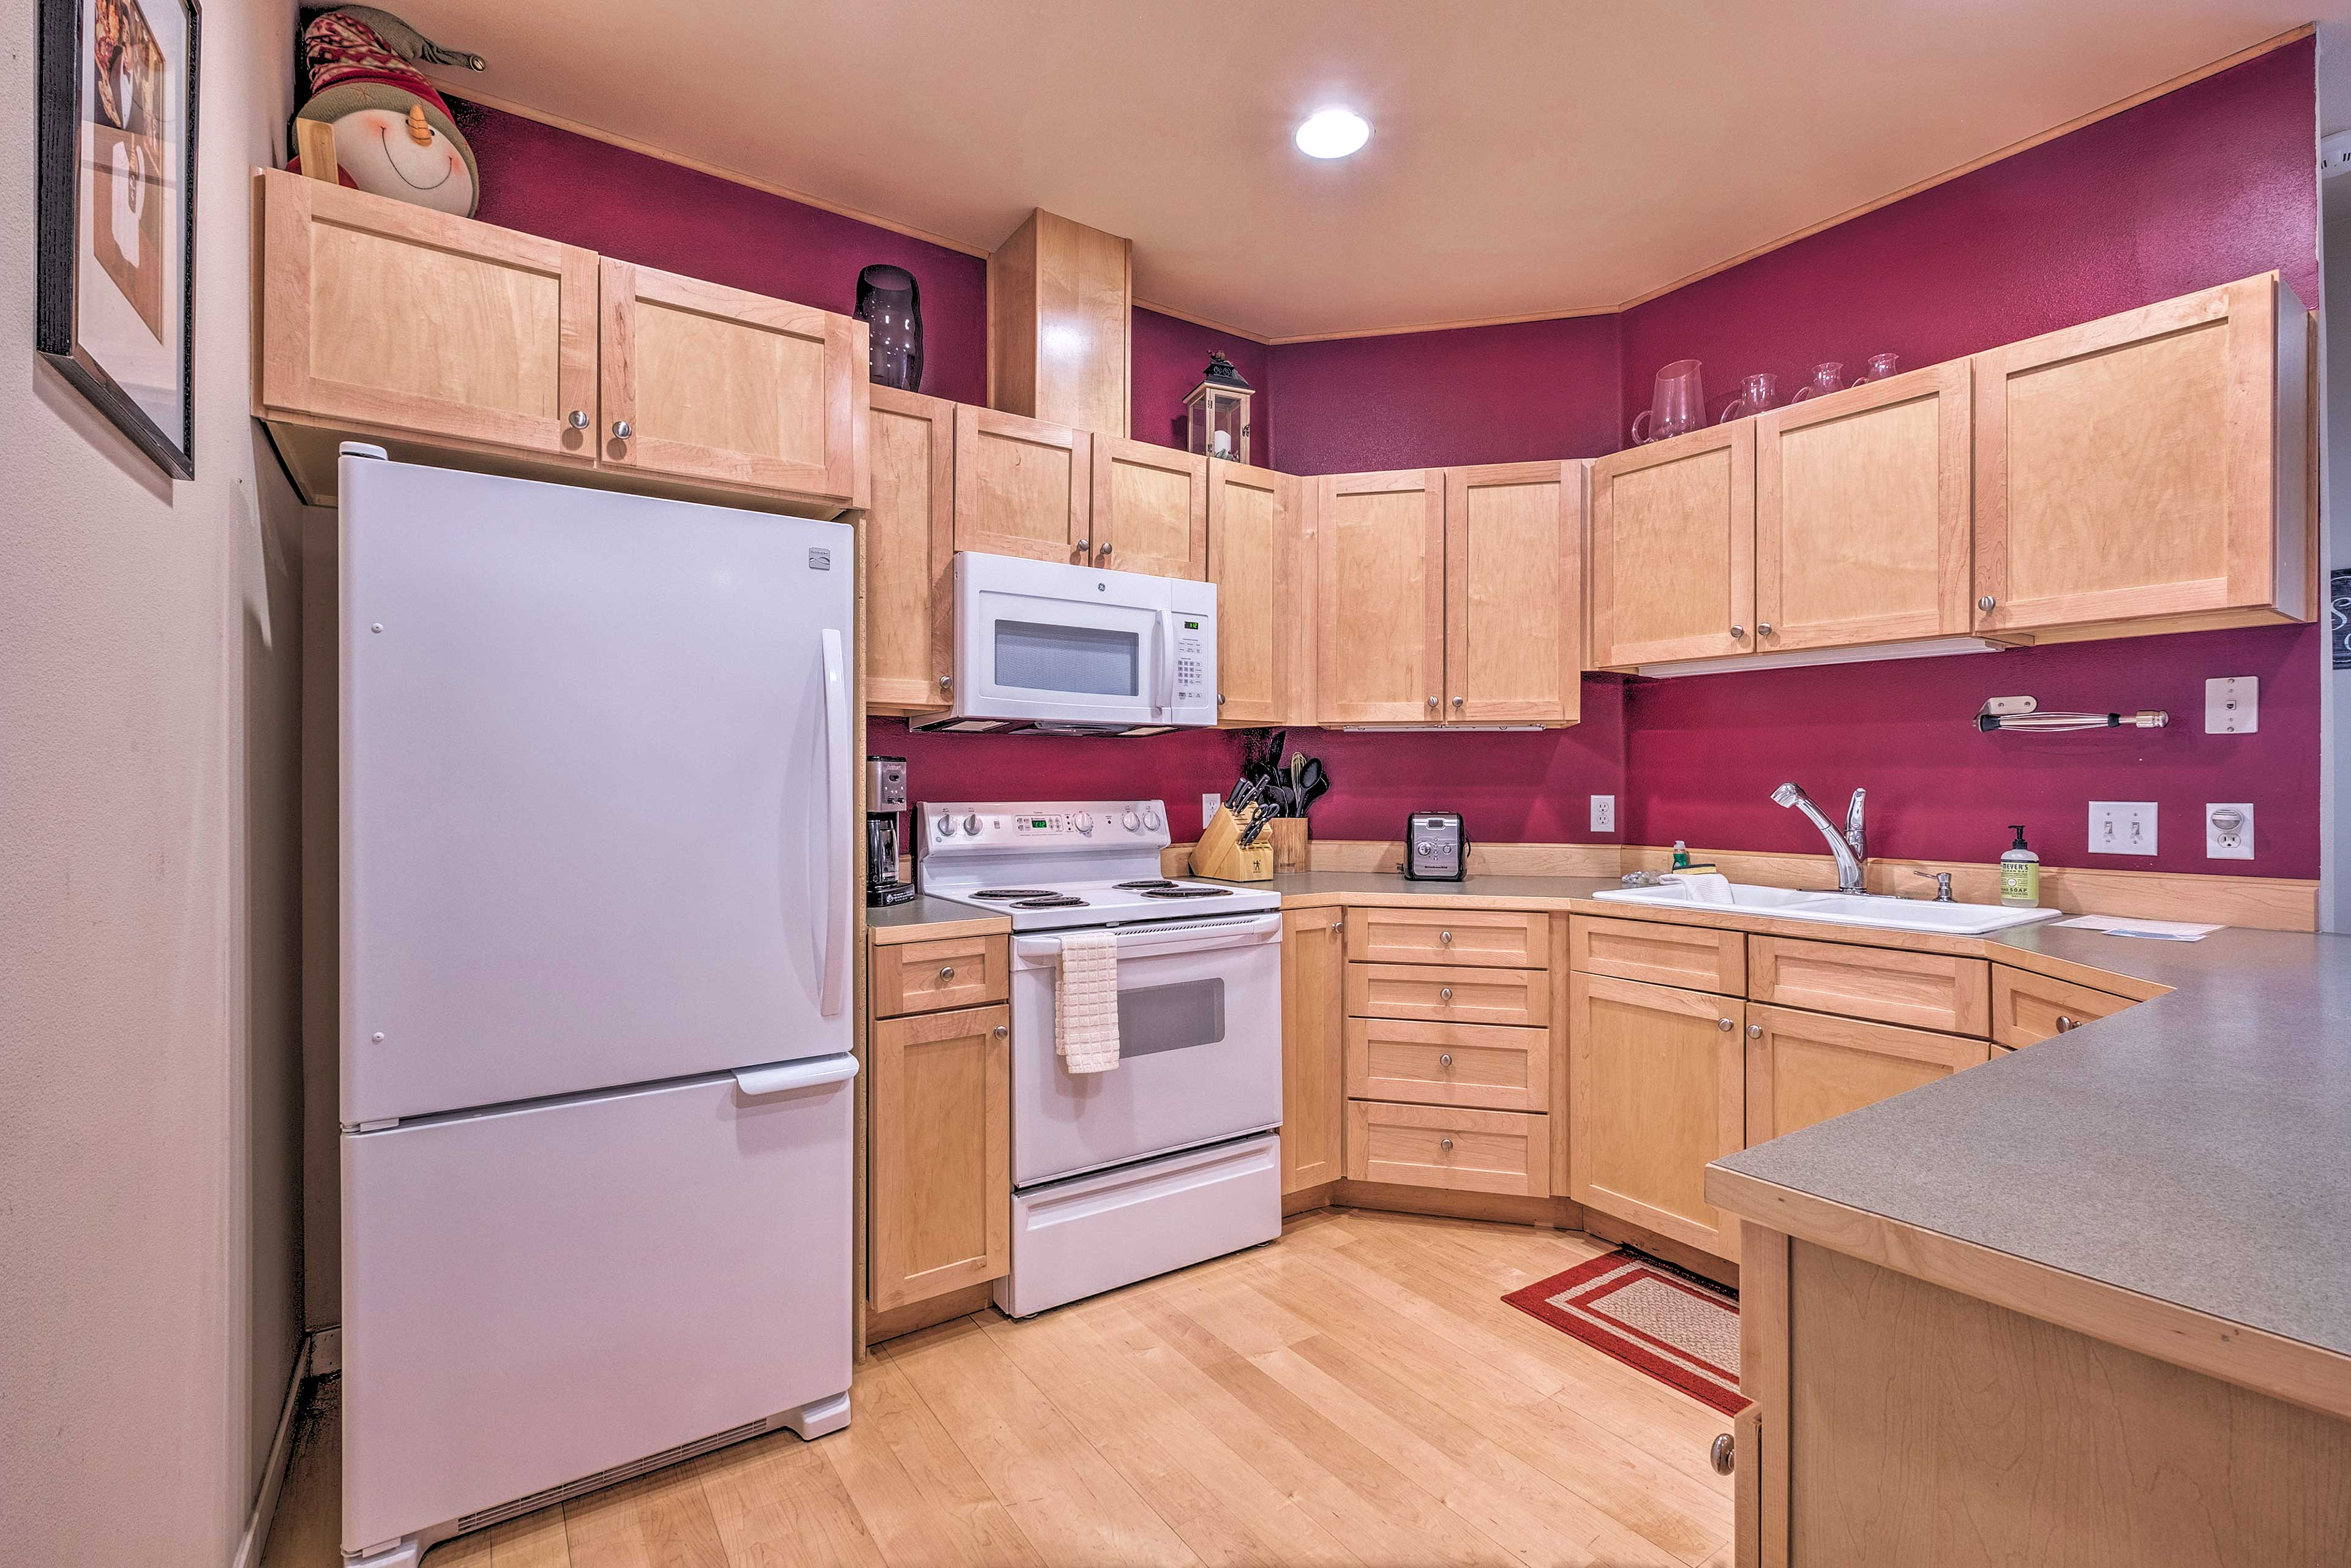 Utilize the fully equipped kitchen for home-style feasts!